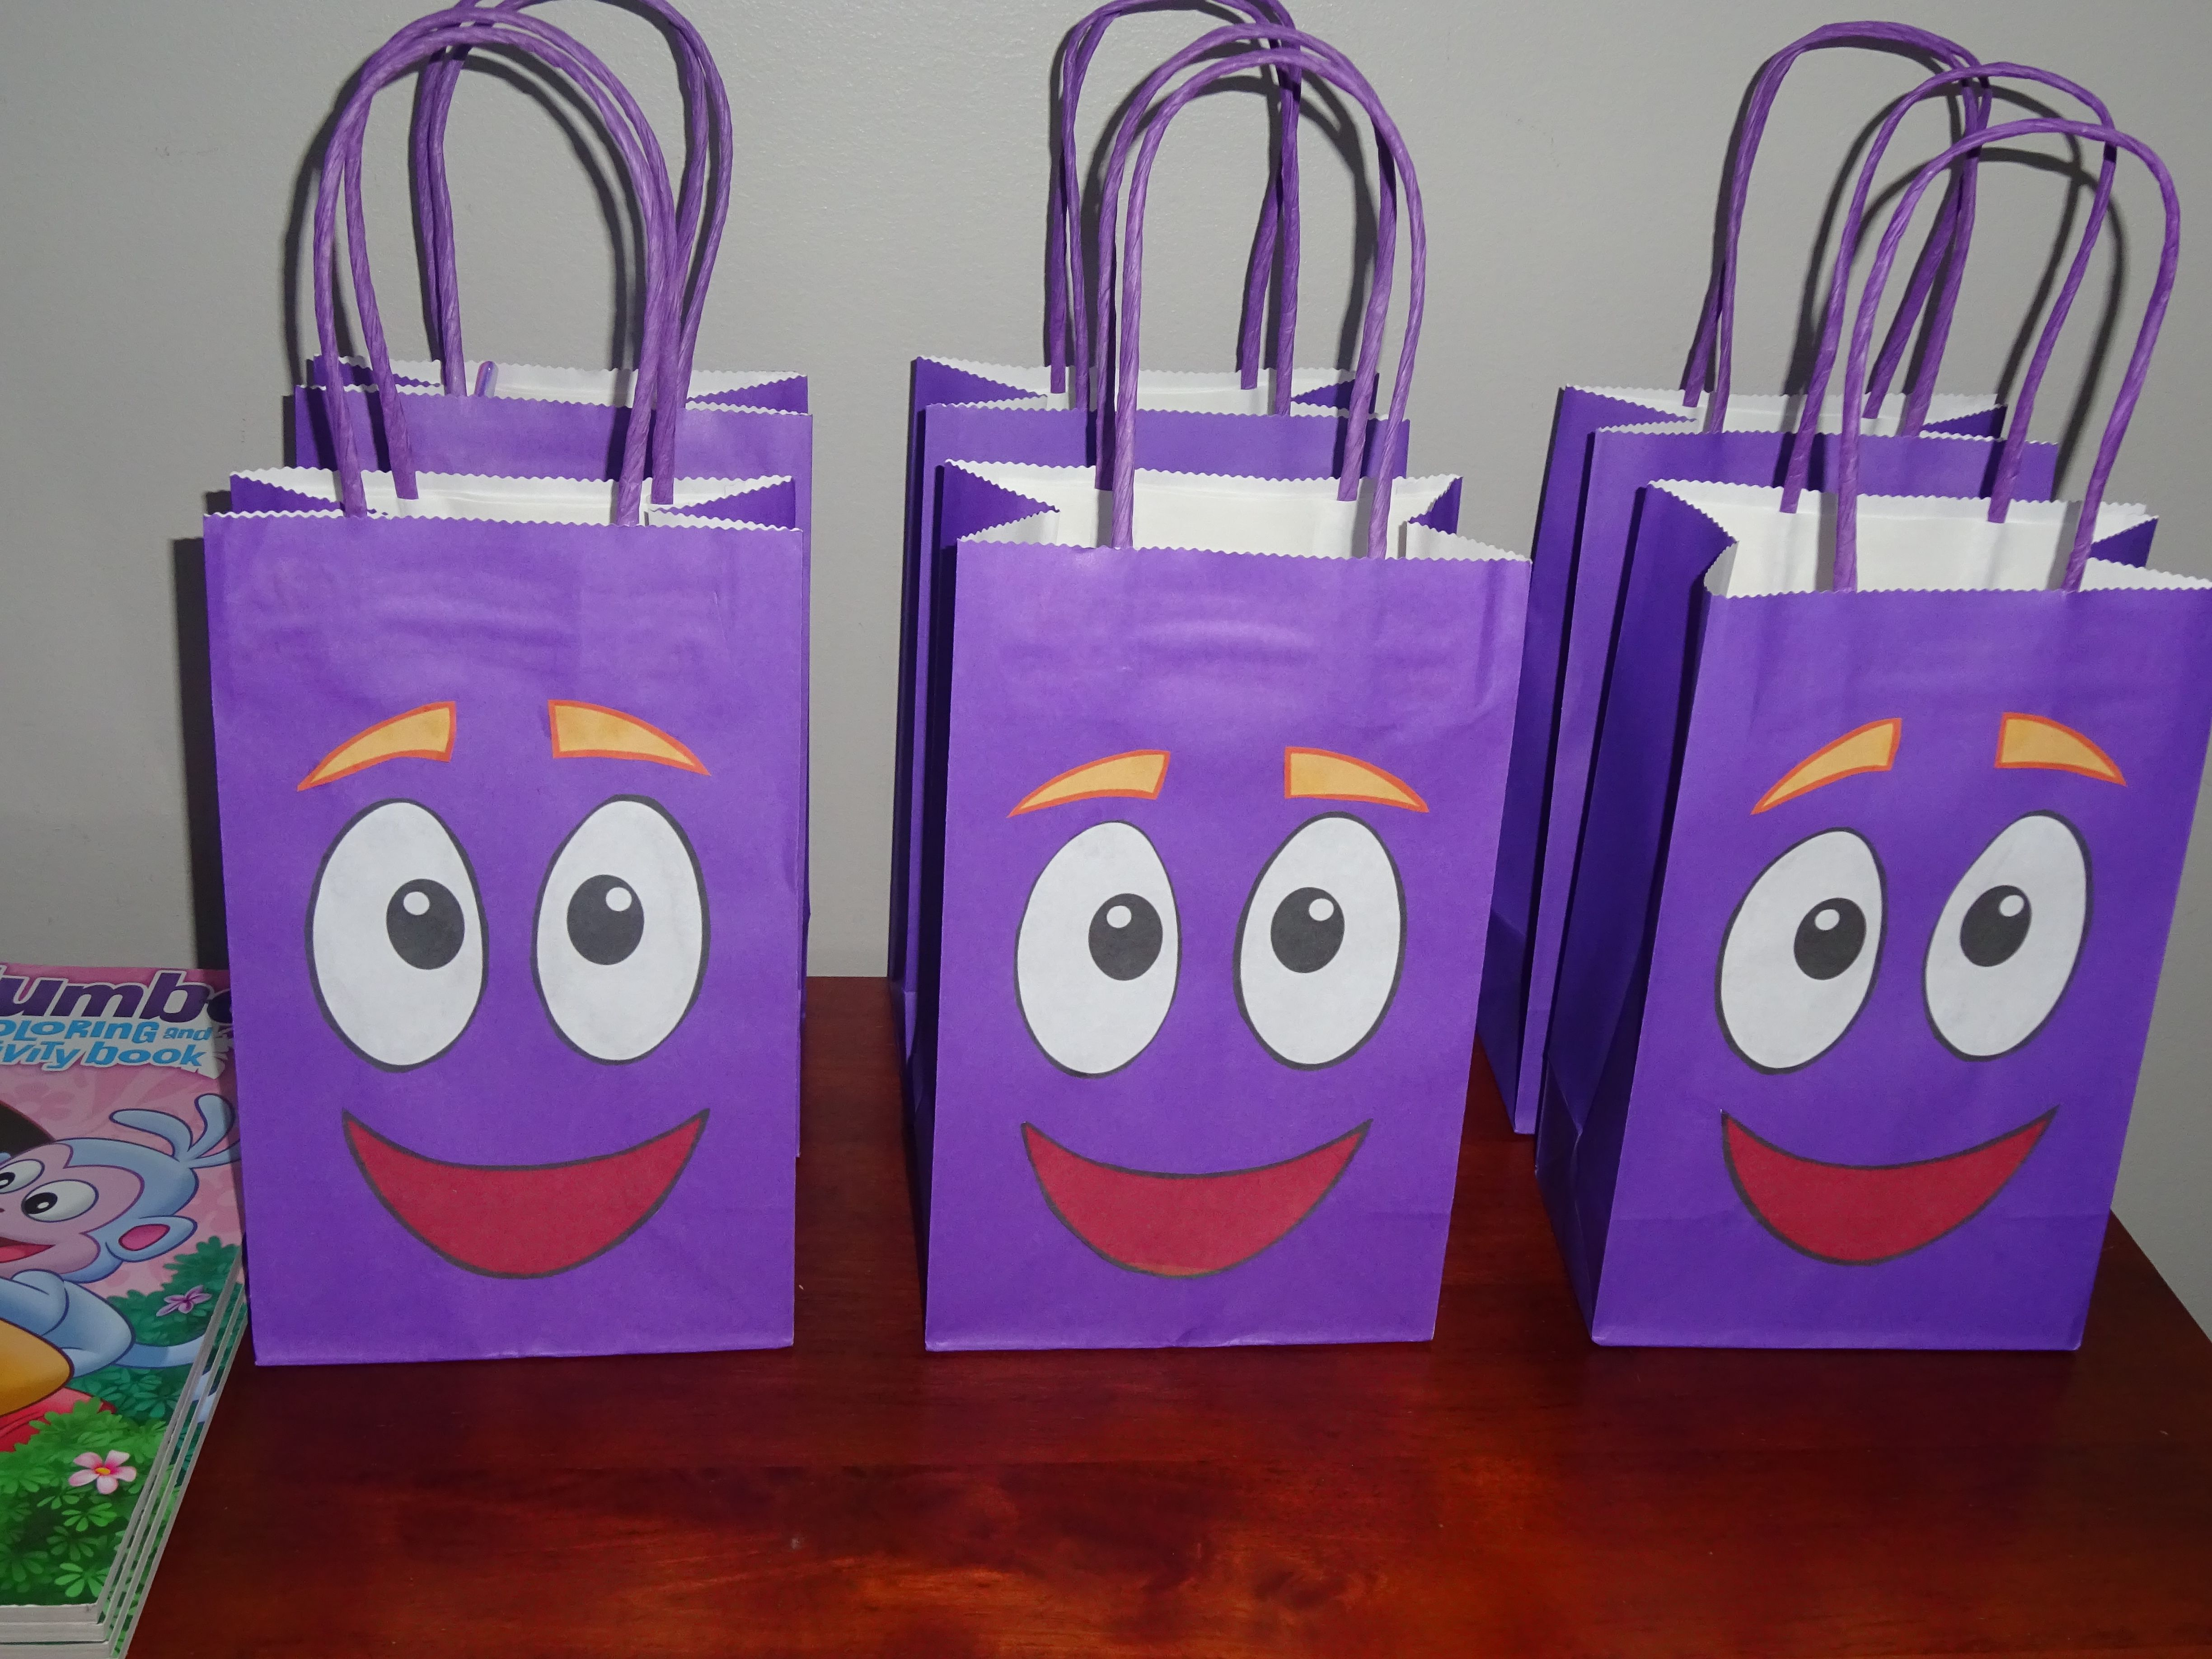 Dora Backpack loot bags Printable glued on purple bags from